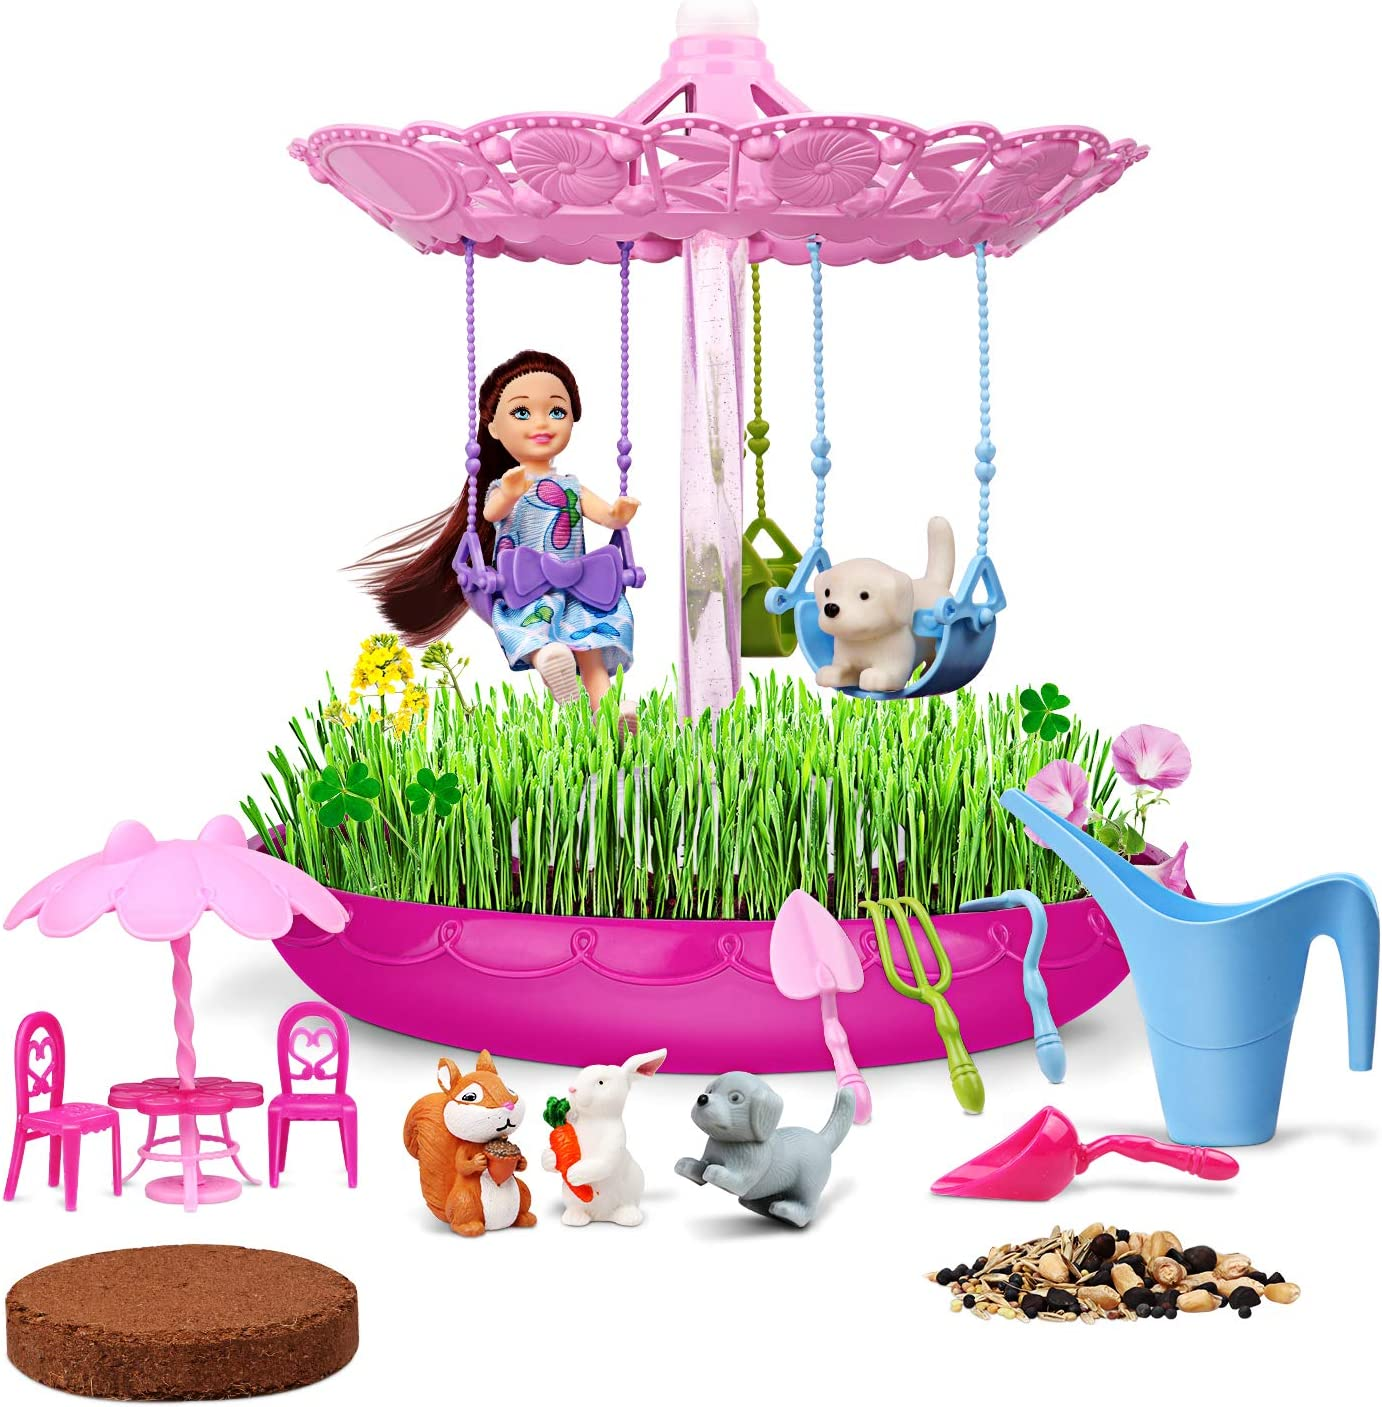 Lydaz Fairy Garden Kits for Kids, Crafts & Plant Growing Set, STEM Educational Playset, Science Gardening DIY Outdoor Toys, Christmas Birthday Gifts for 3 4 5 6 7 8 9 10 11 12 Years Old Girls and Boys